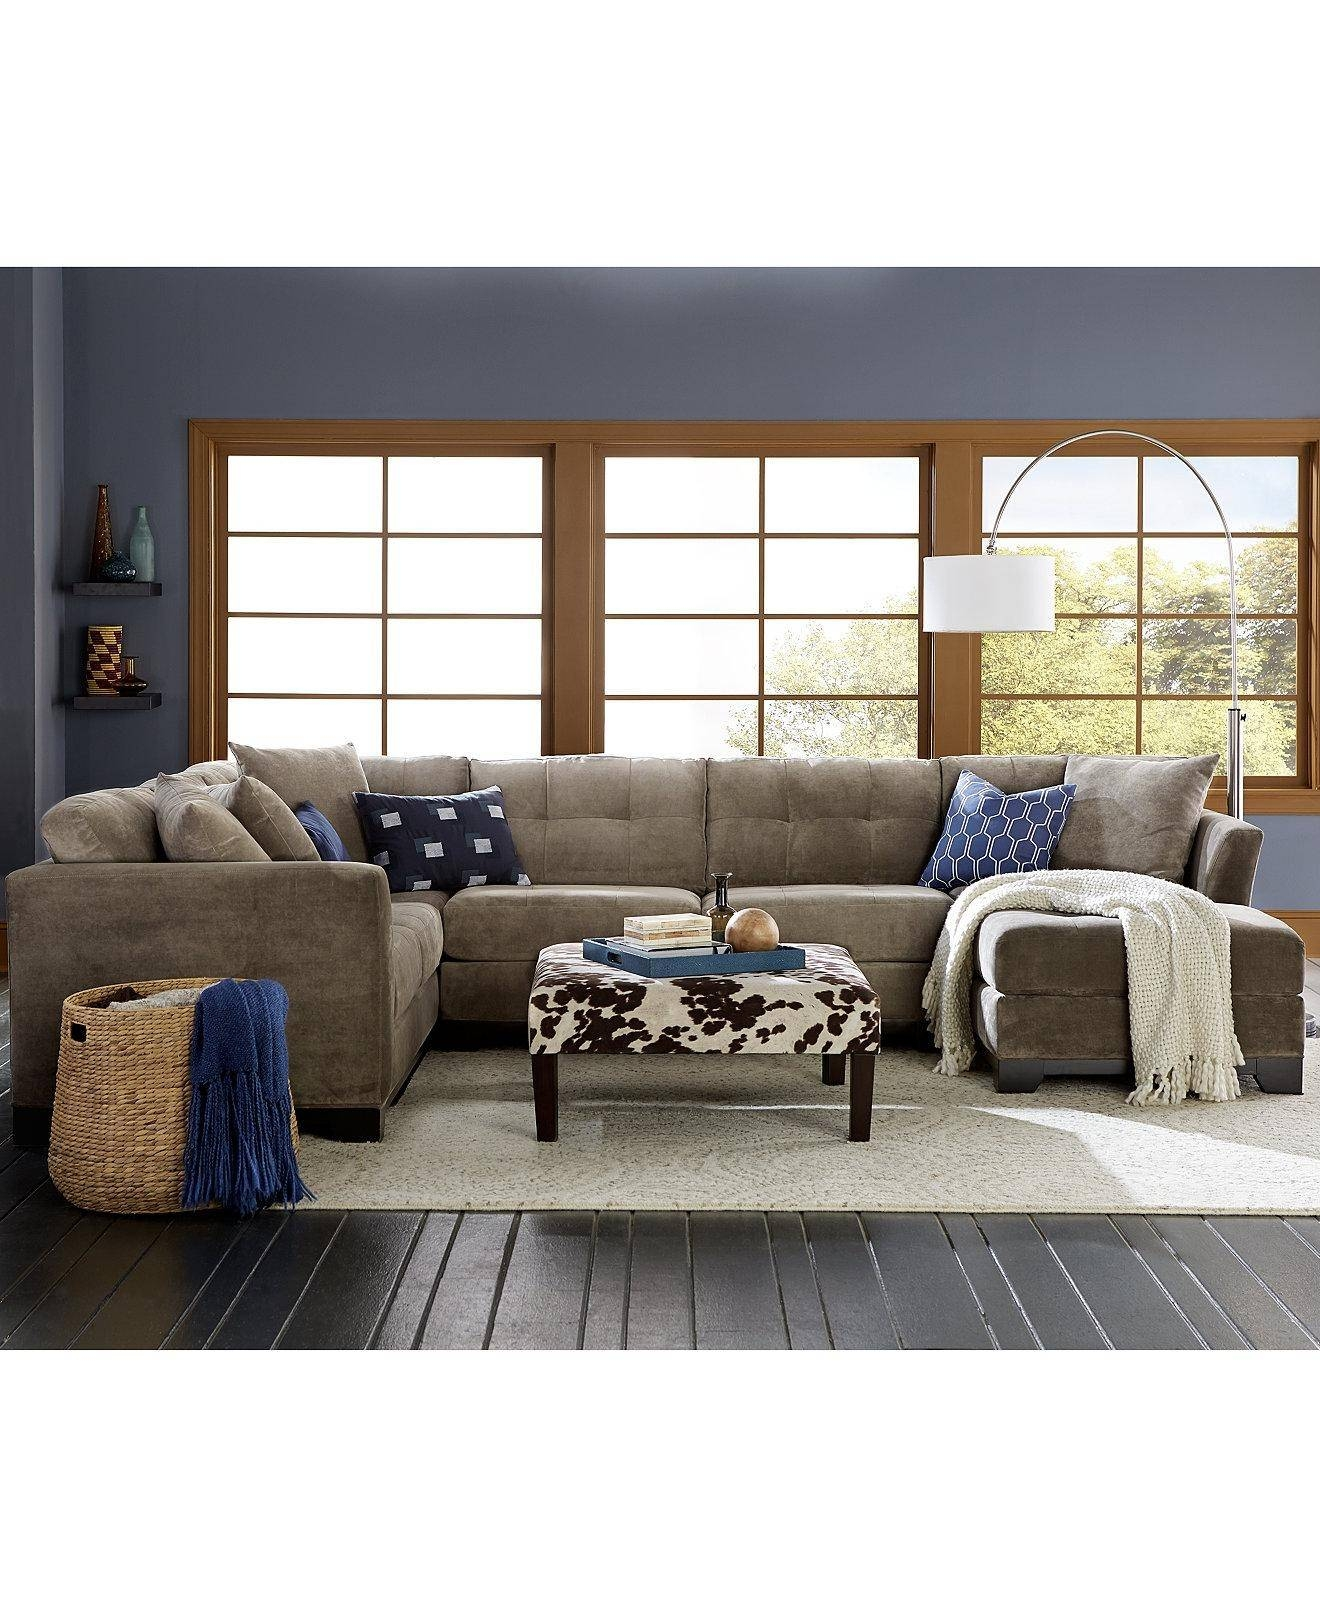 20 Best Ideas Craigslist Sectional Sofas | Sofa Ideas In Craigslist Sectional Sofas (View 15 of 15)